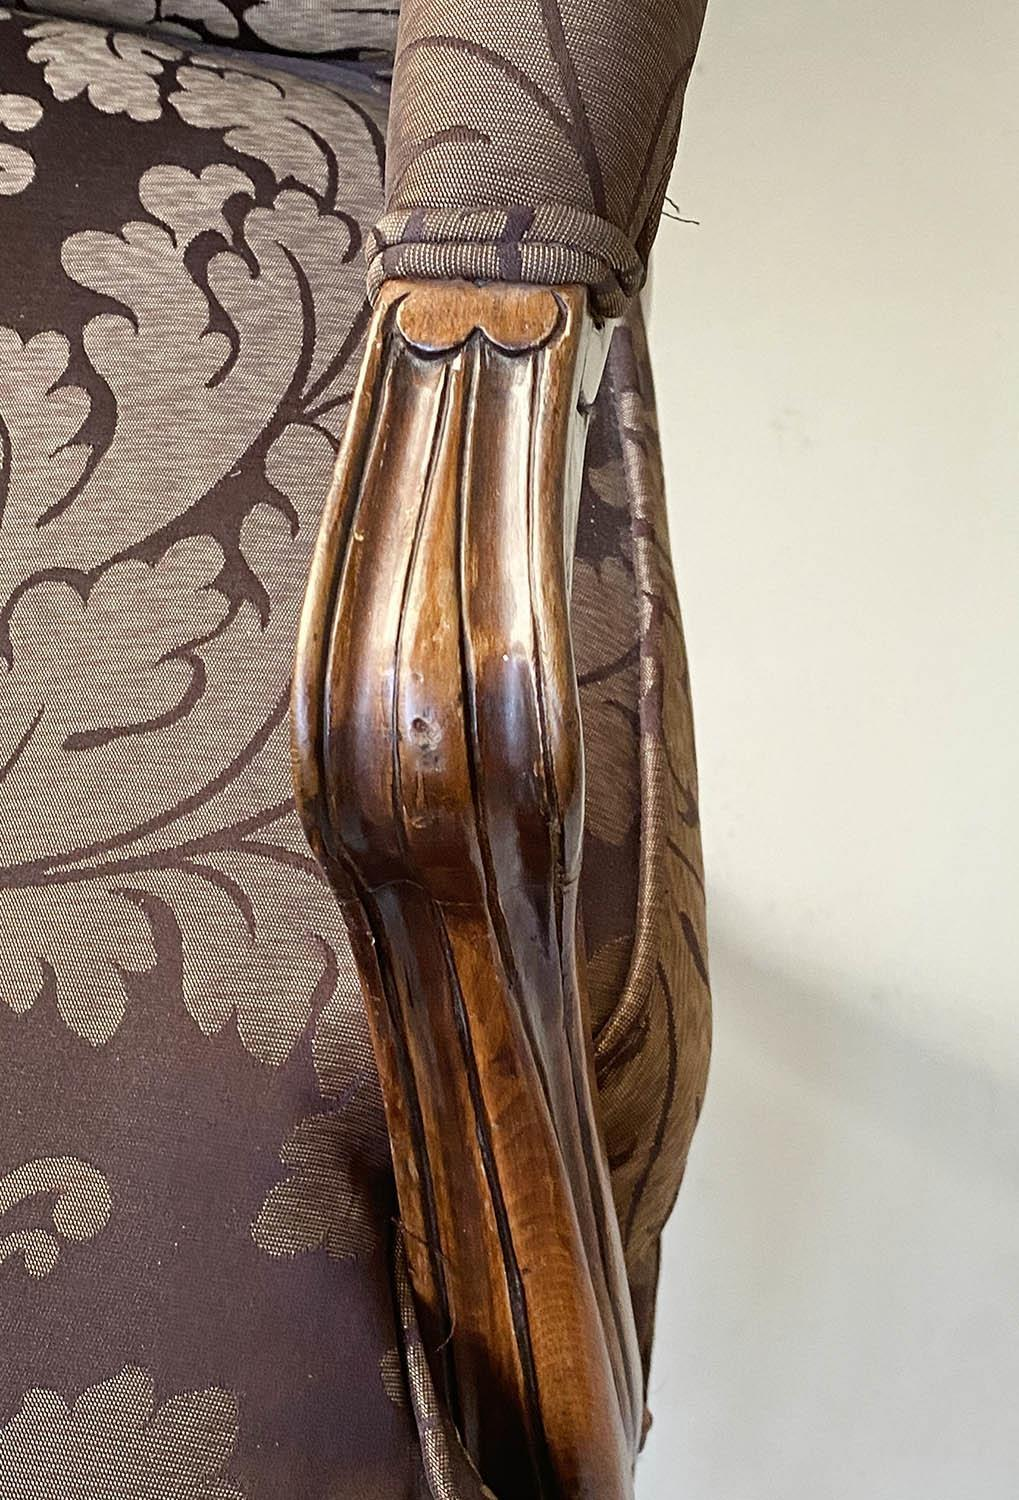 FAUTEUILS, a pair, French Louis XV style, stained walnut, with two tone brown leaf silk - Image 6 of 9